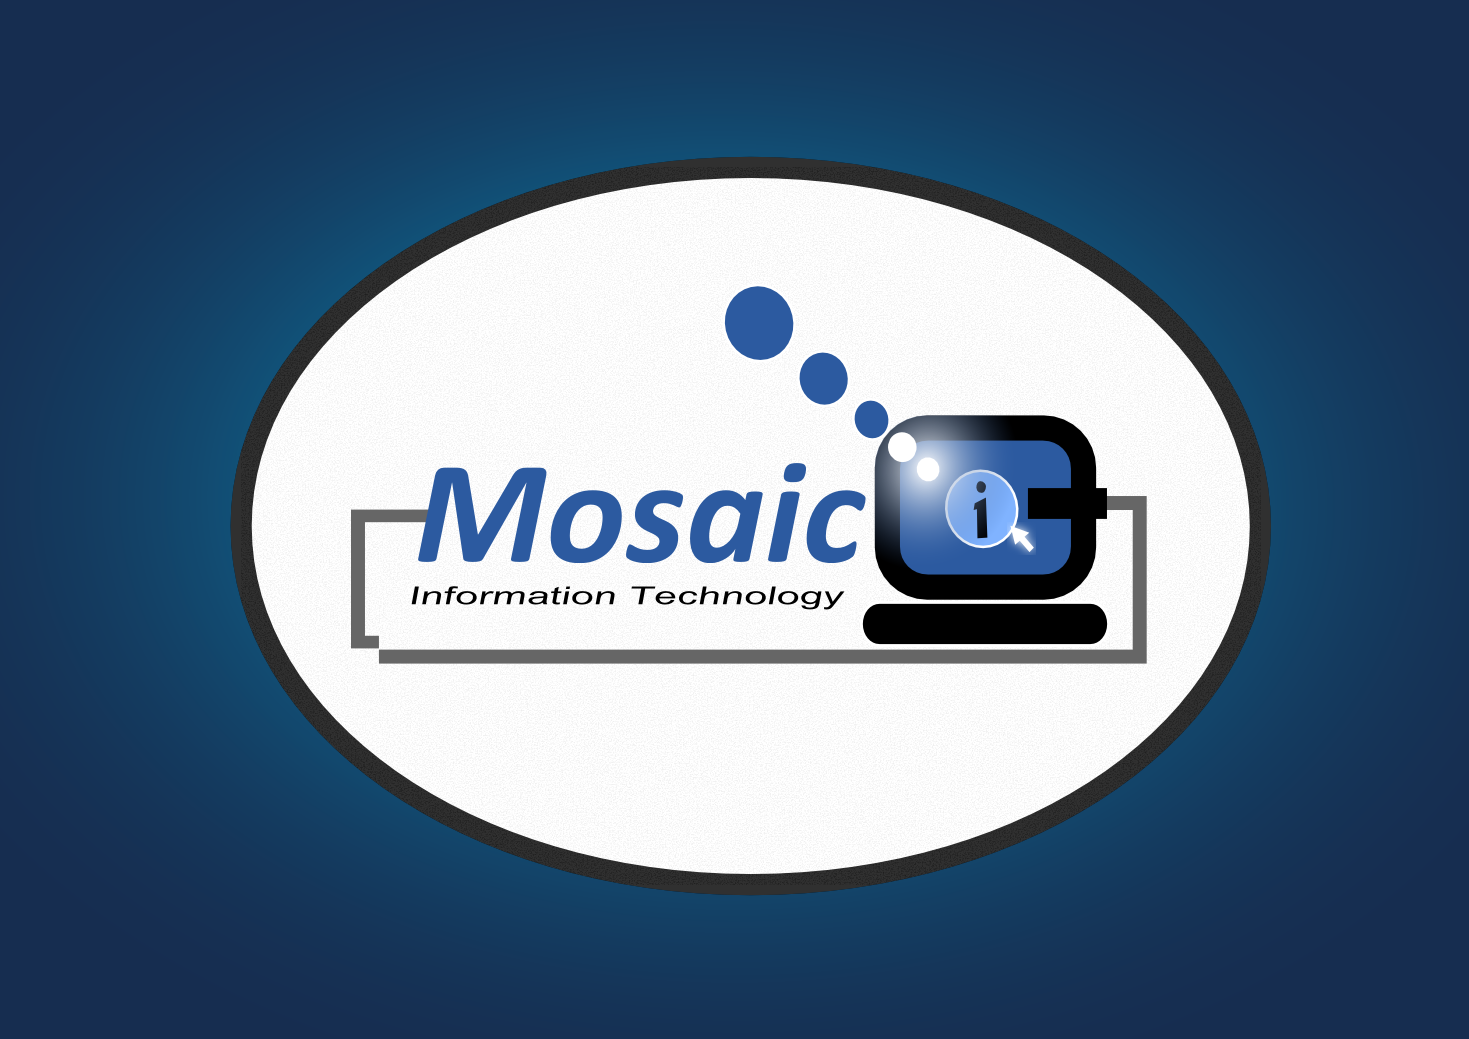 Logo Design by whoosef - Entry No. 77 in the Logo Design Contest Mosaic Information Technology Logo Design.